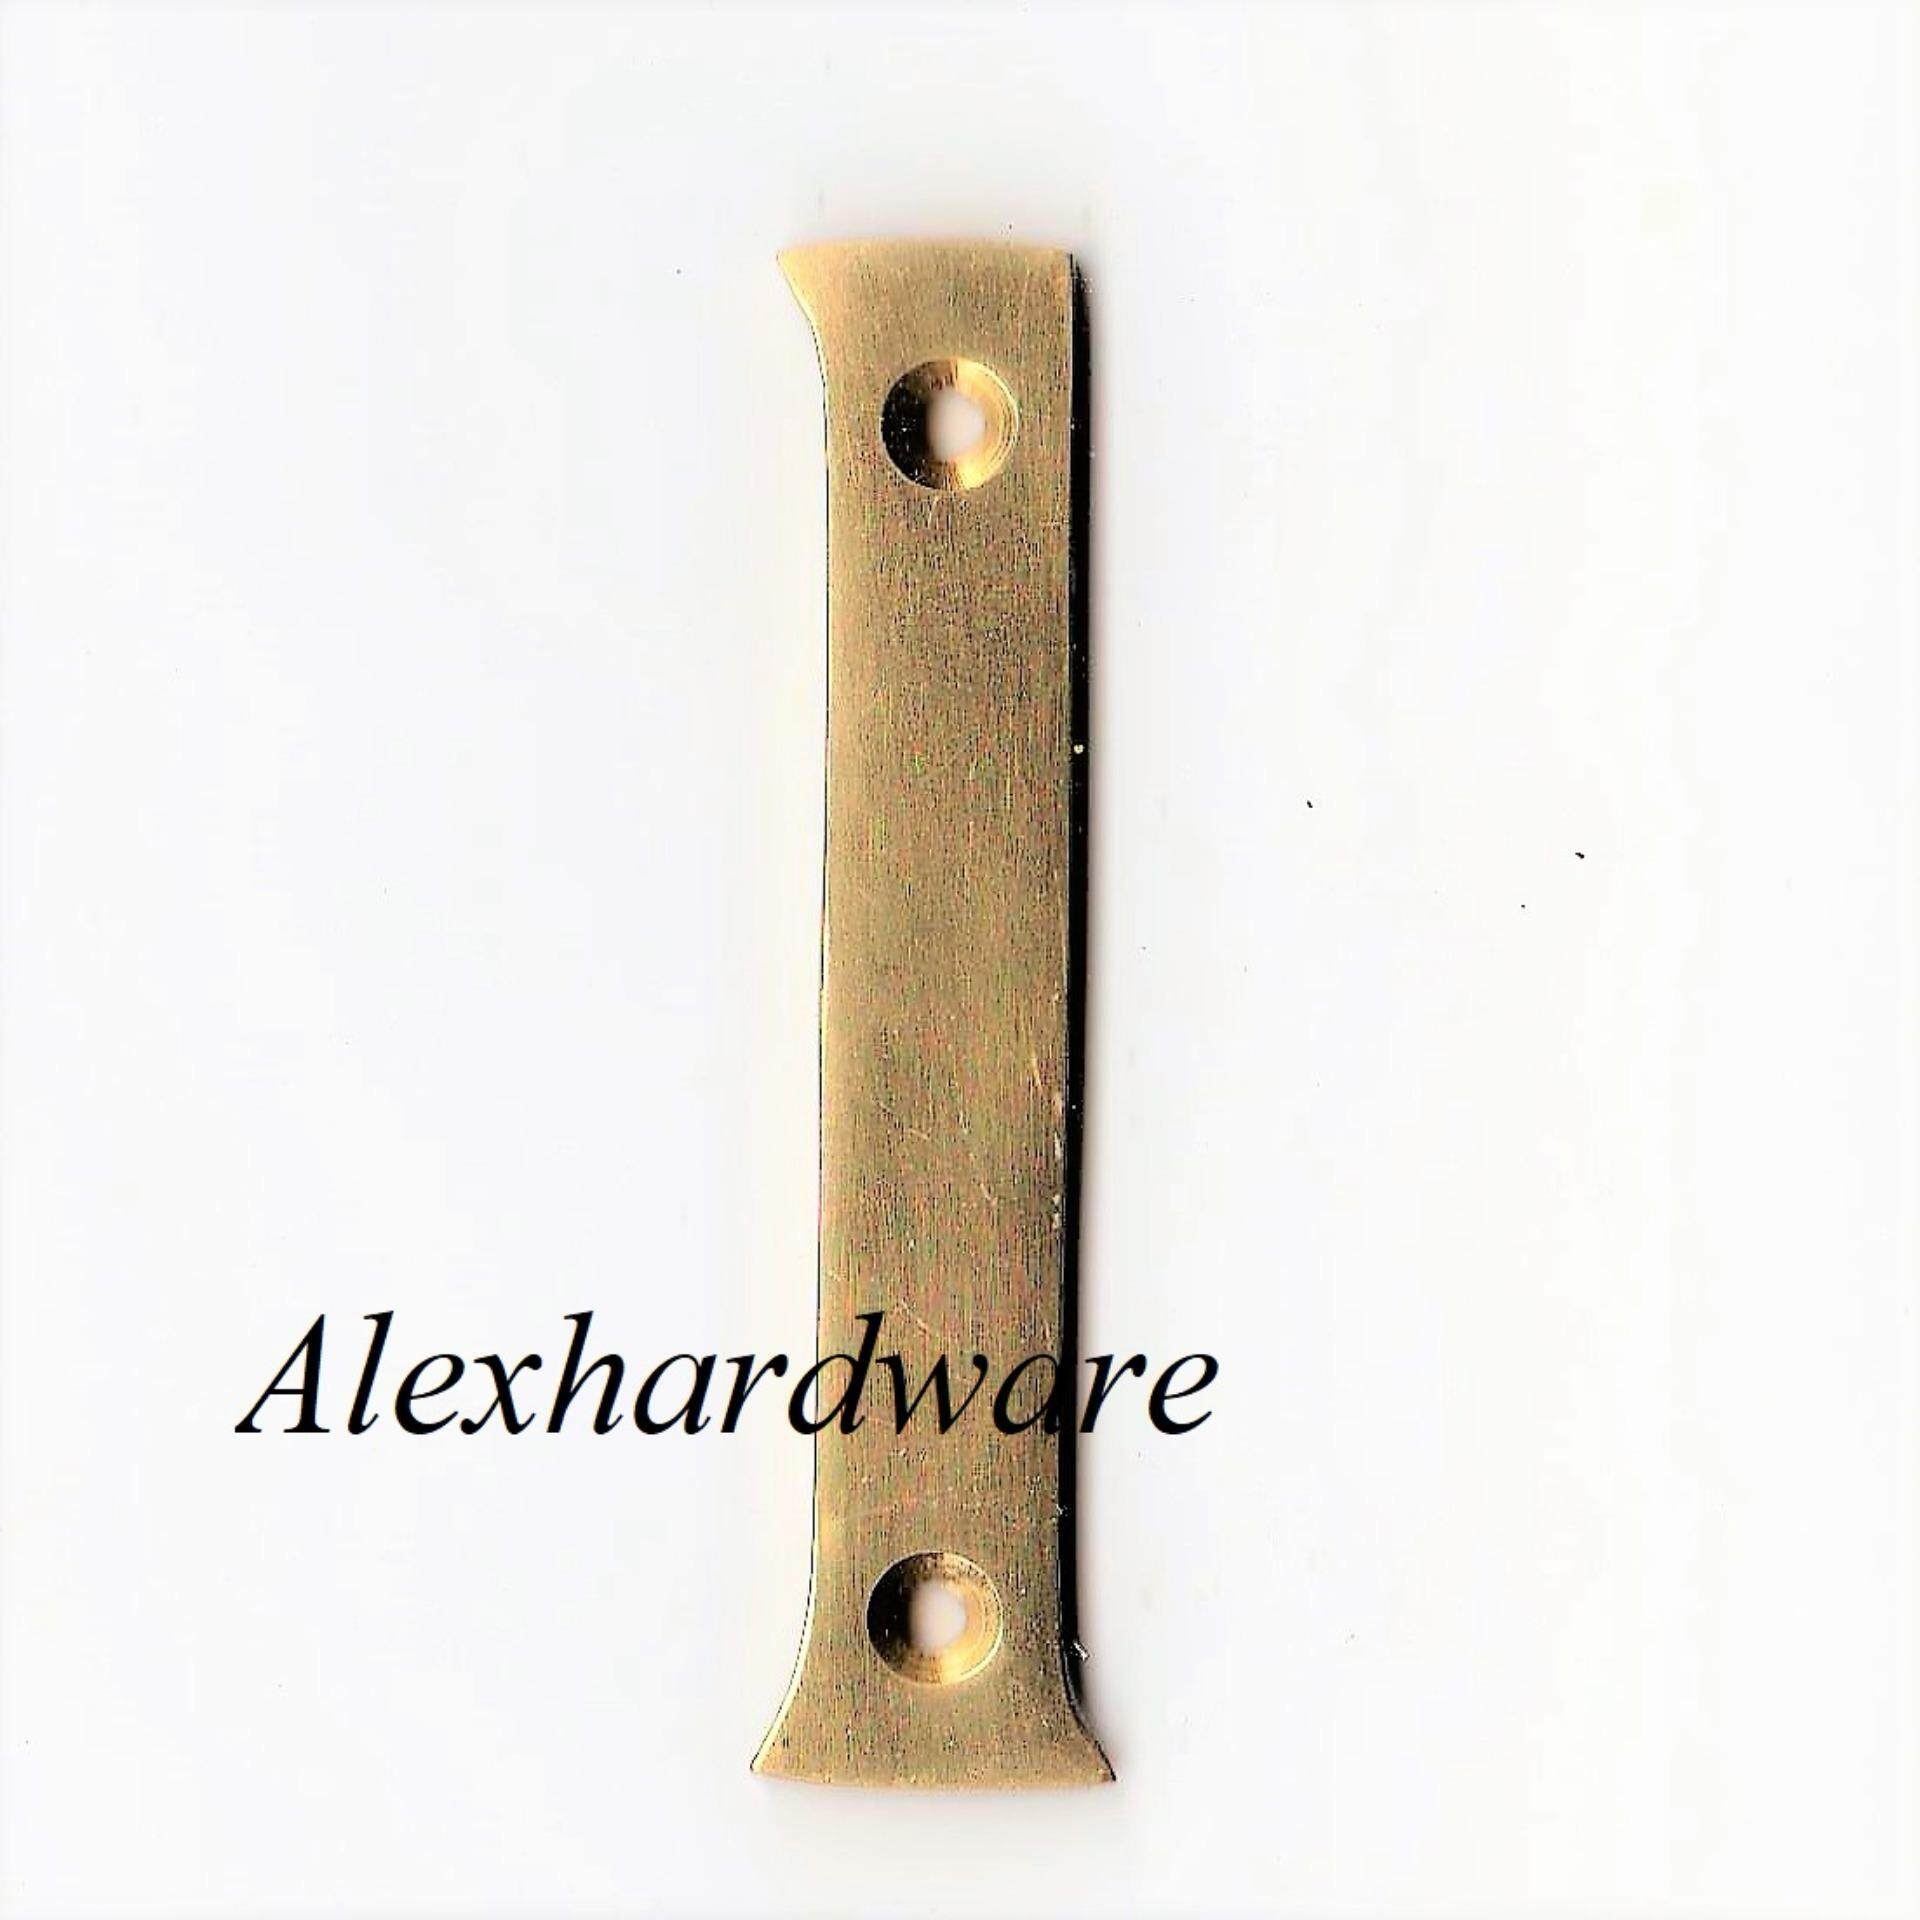 1 X Brass Number Plate (5cm*7.5cm) - 1 *stock Clearance By Alex Hardware.